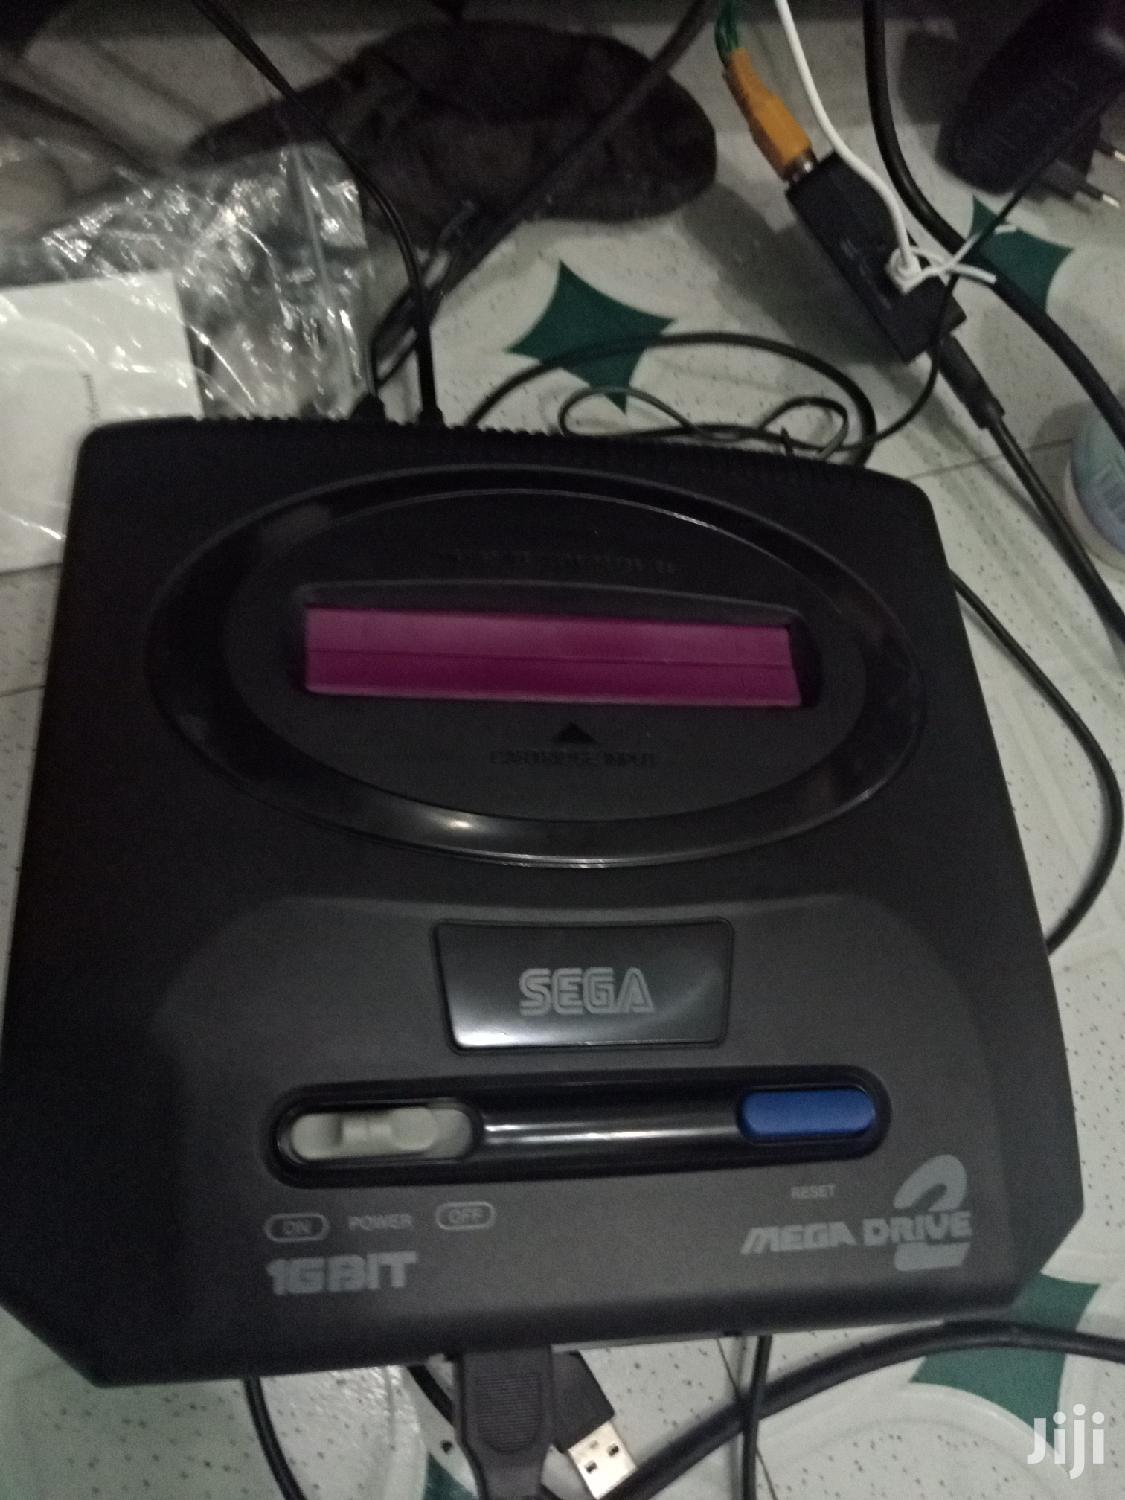 Sega Console   Video Game Consoles for sale in Tamale Municipal, Northern Region, Ghana